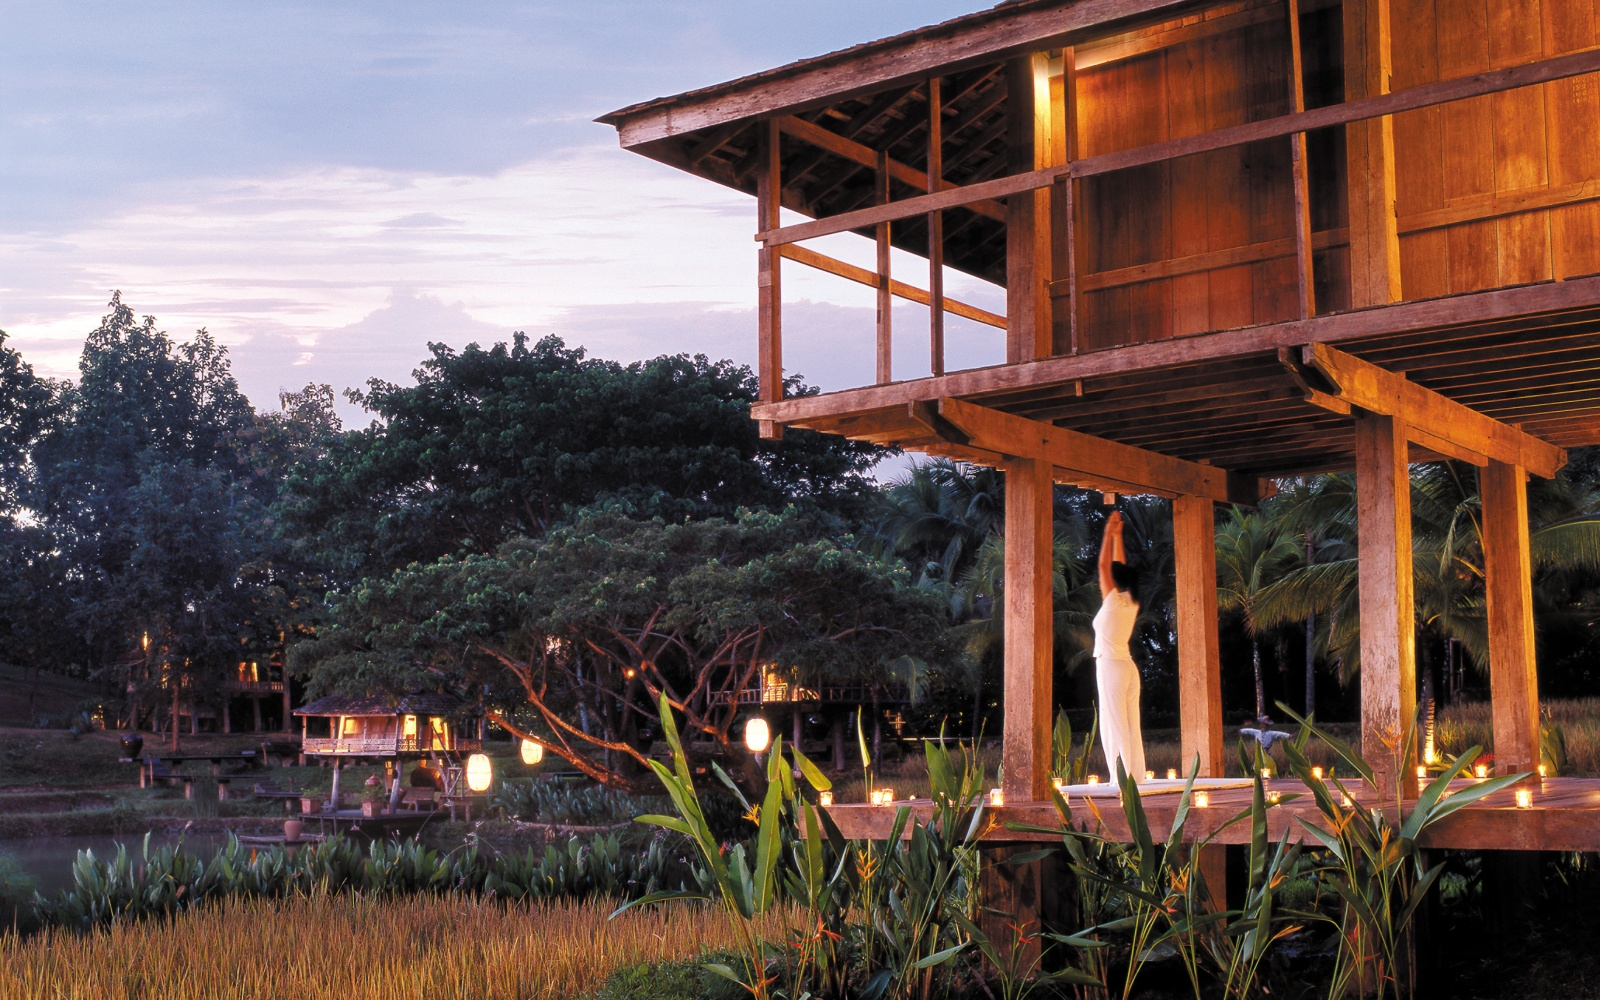 No. 27 Four Seasons Resort Chiang Mai, Thailand